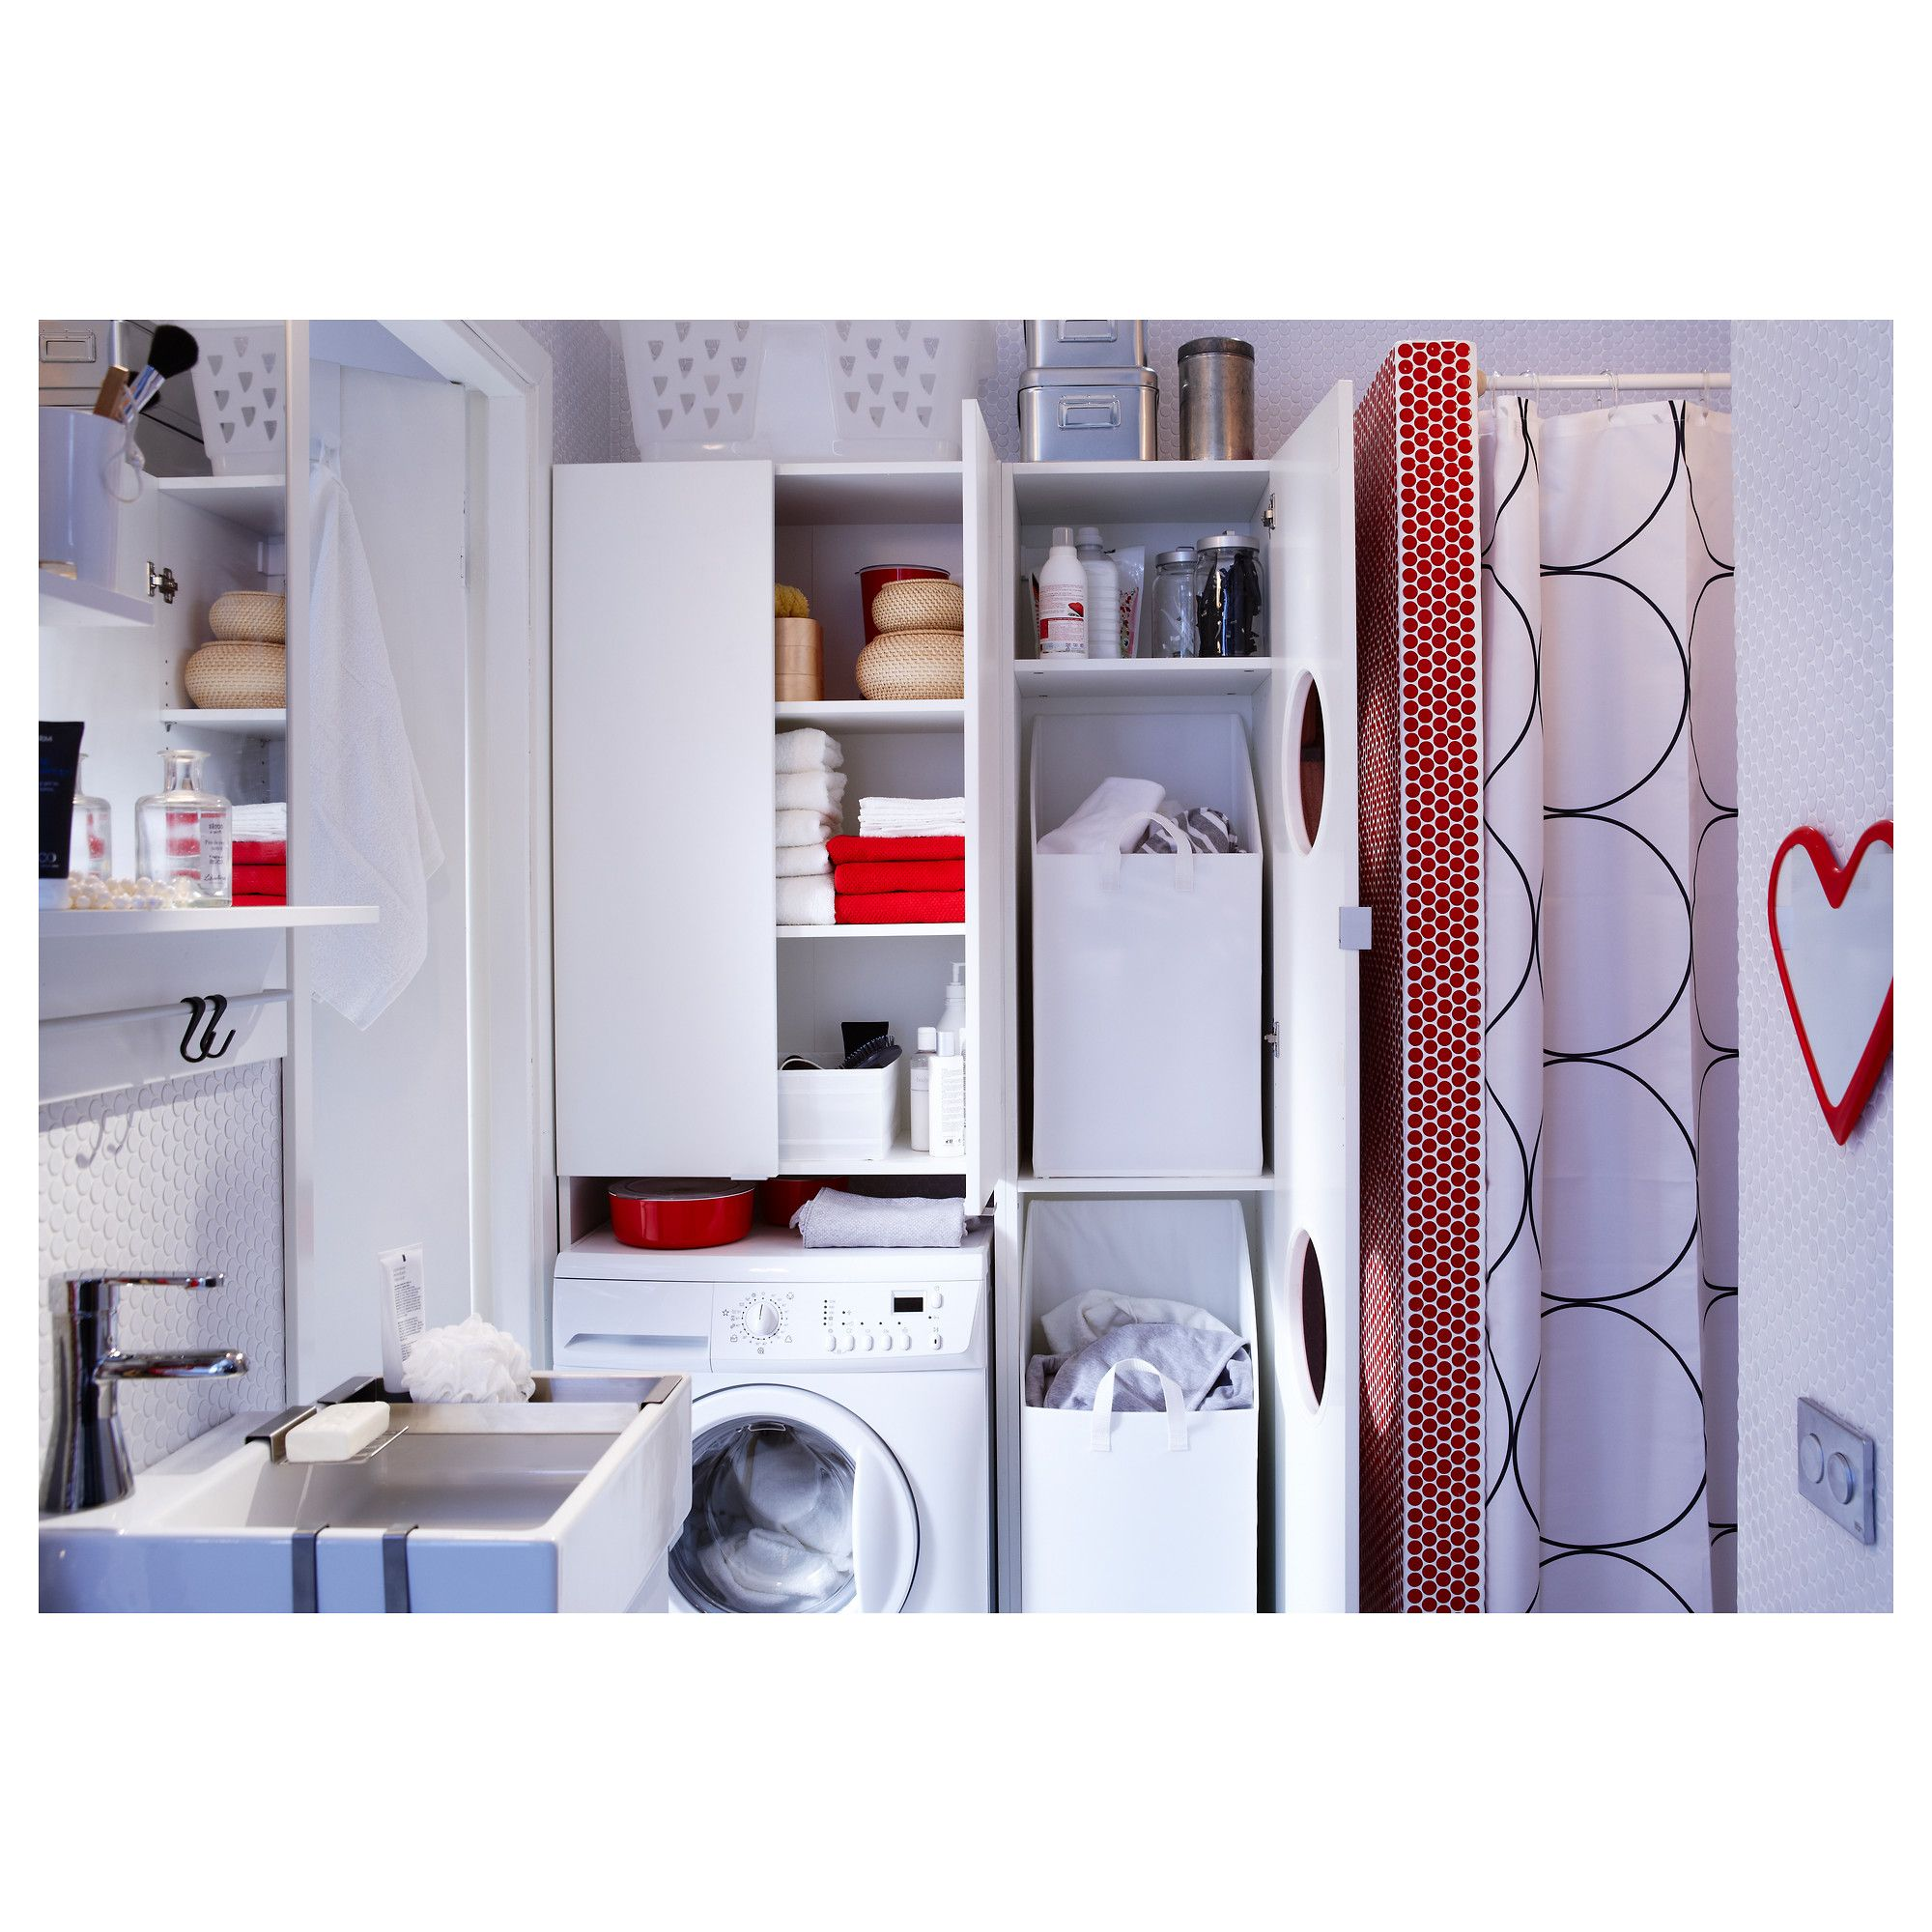 Algot Ikea Lavanderia LillÅngen Laundry Cabinet Ikea Ideas For The House